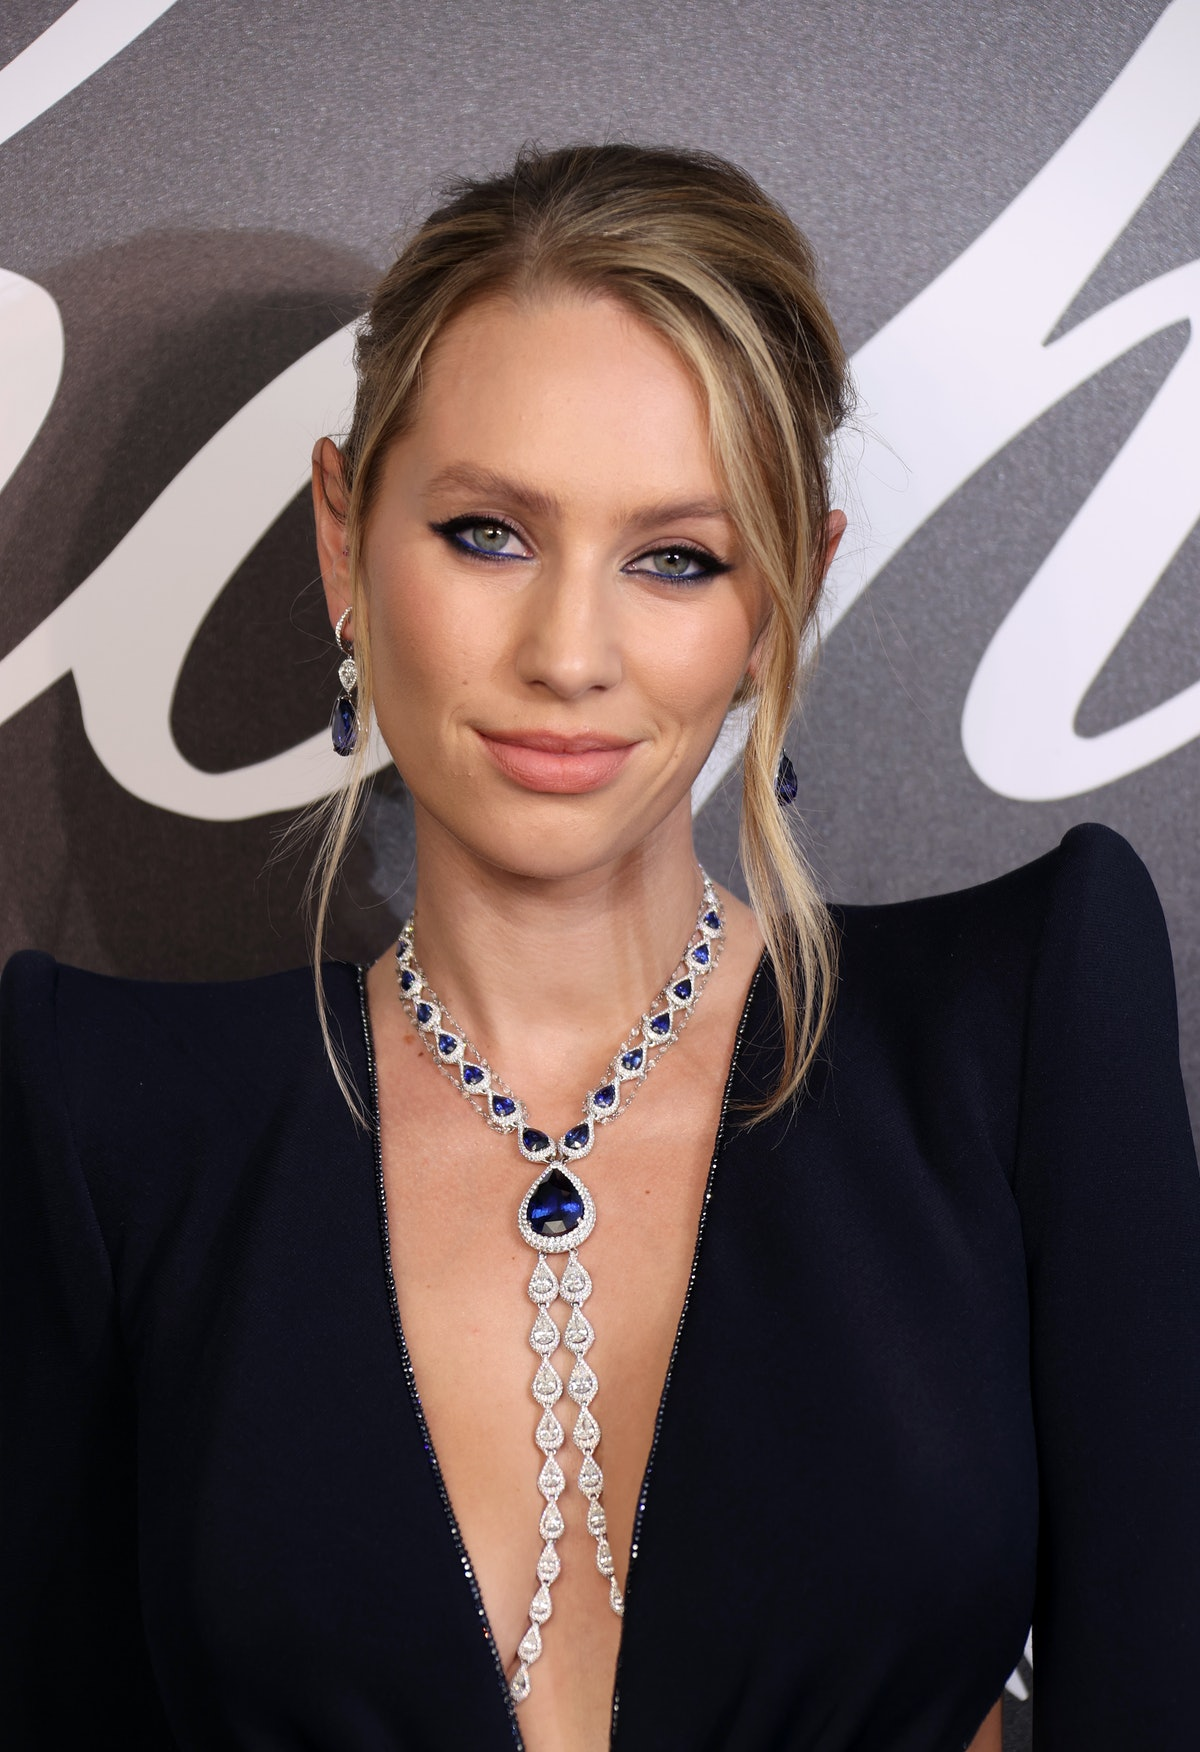 CANNES, FRANCE - JULY 12: Dylan Penn attends the Chopard Gentleman's Evening during the 74th annual Cannes Film Festival on July 12, 2021 in Cannes, France. (Photo by Mike Marsland/WireImage)